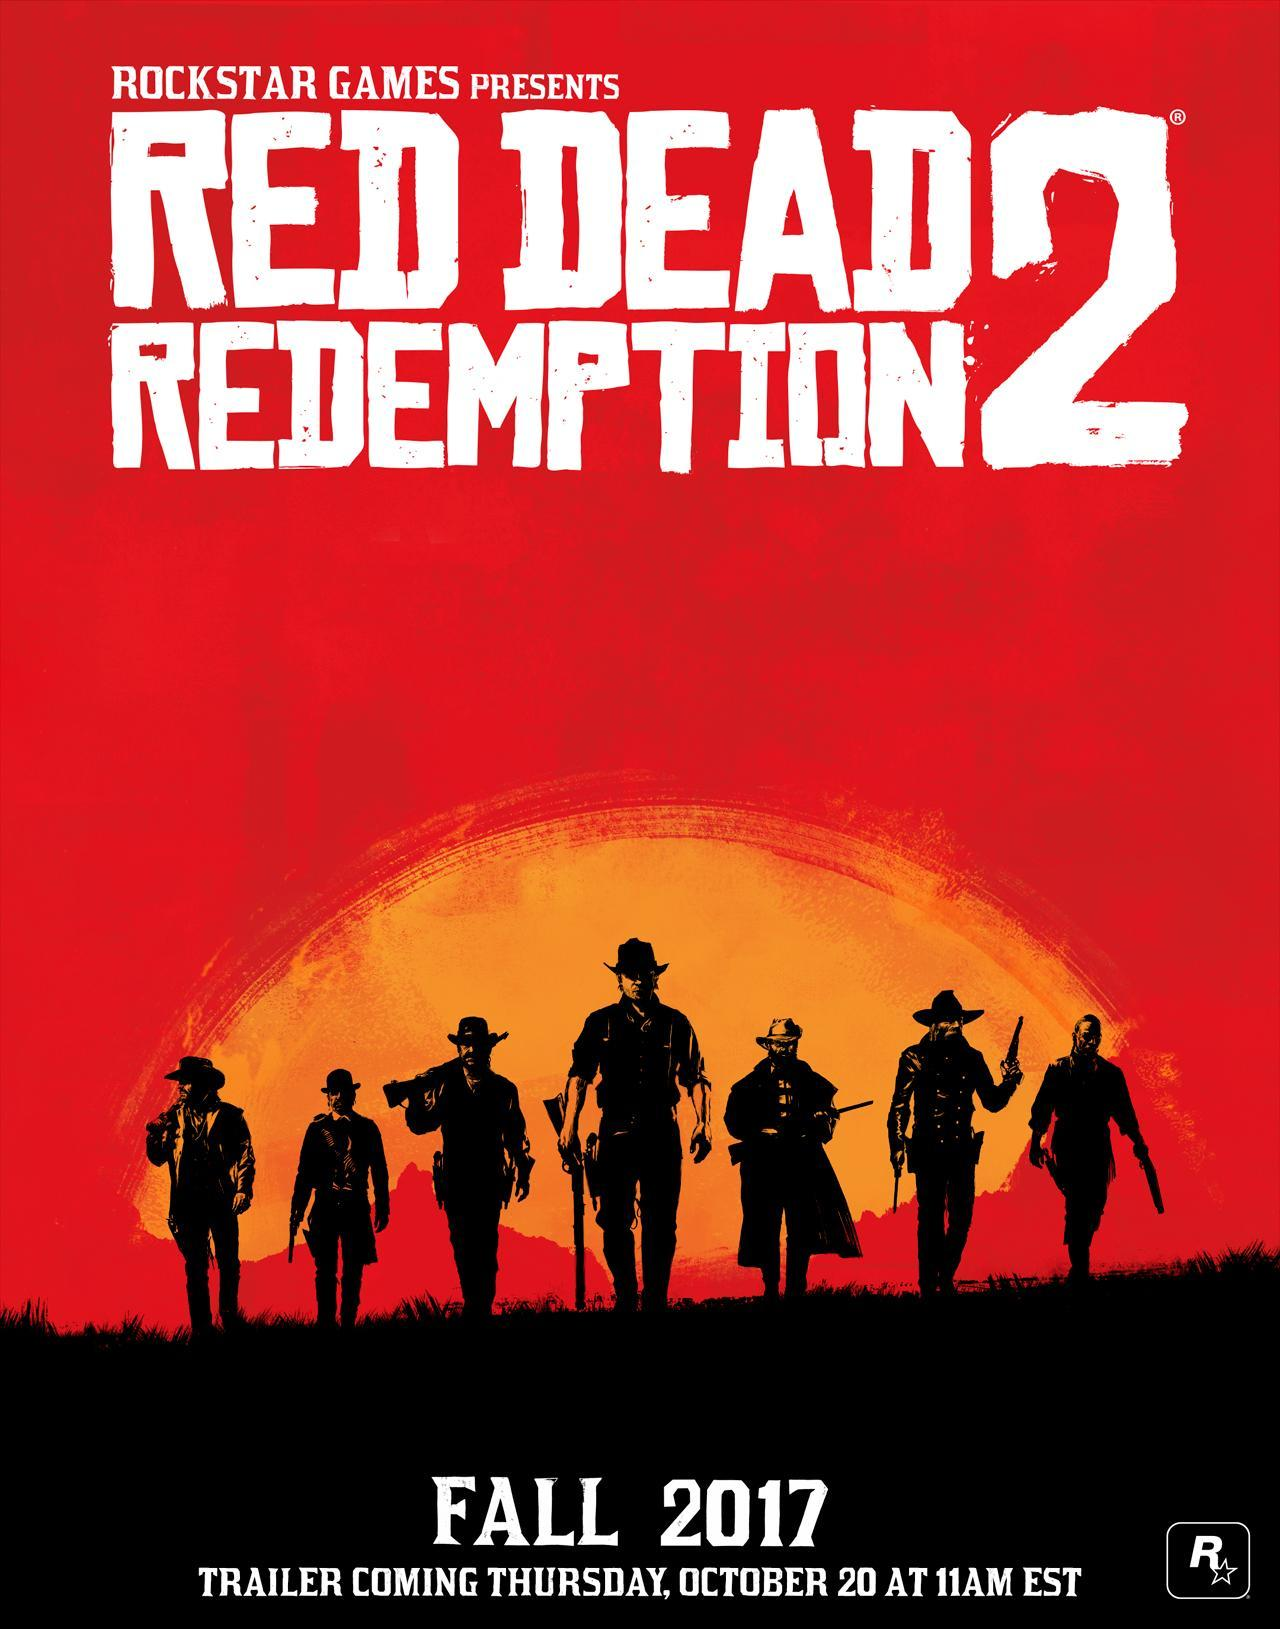 Red Dead Redemption 2 Announced - First Trailer Coming on October 20